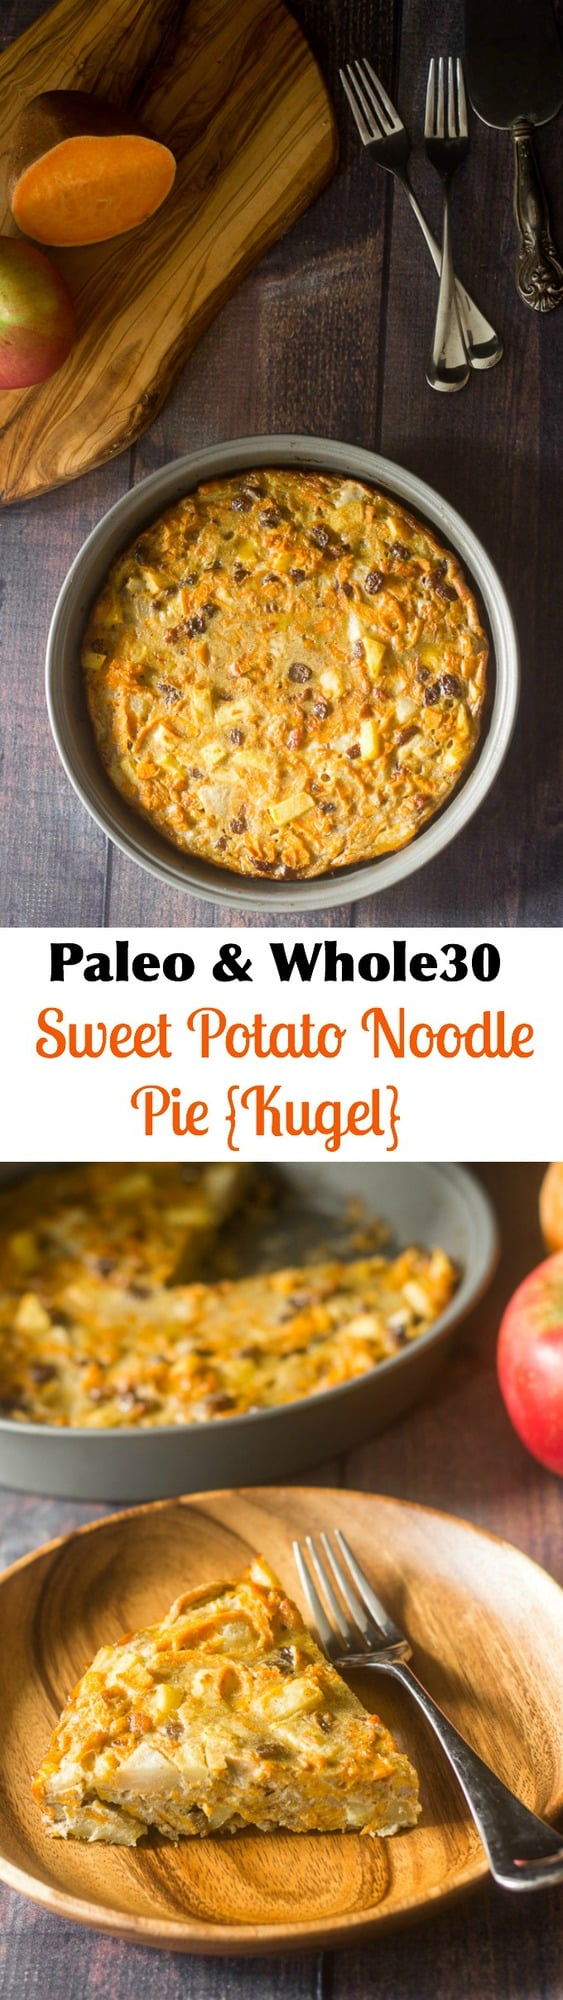 Paleo Noodle Kugel made with spiralized sweet potatoes, apples, pears raisins and sweet fall spices! Grain free, Paleo, Whole30 friendly, comforting and delicious!